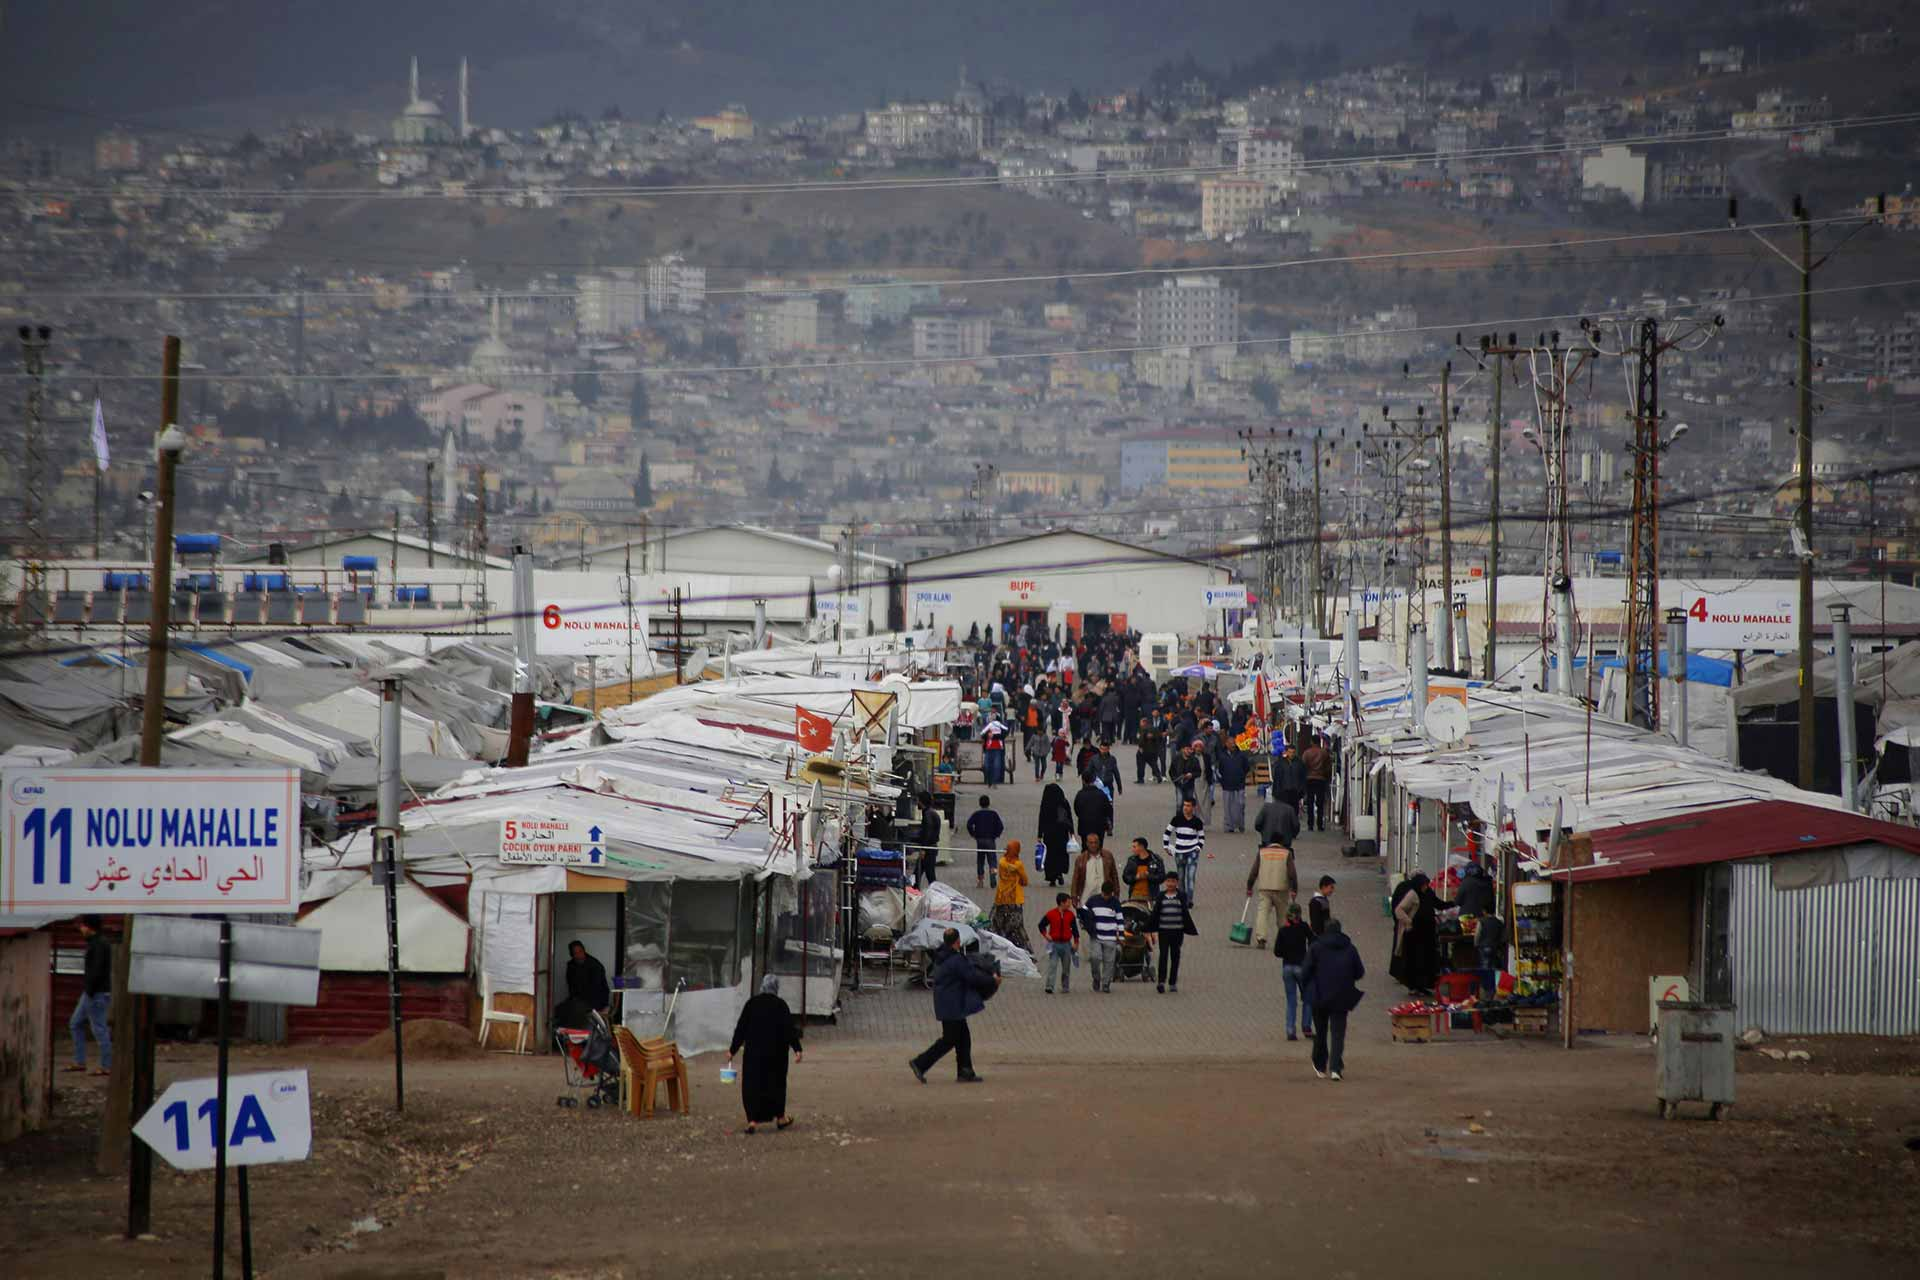 A street in the refugee camp tents Kahramanmaras